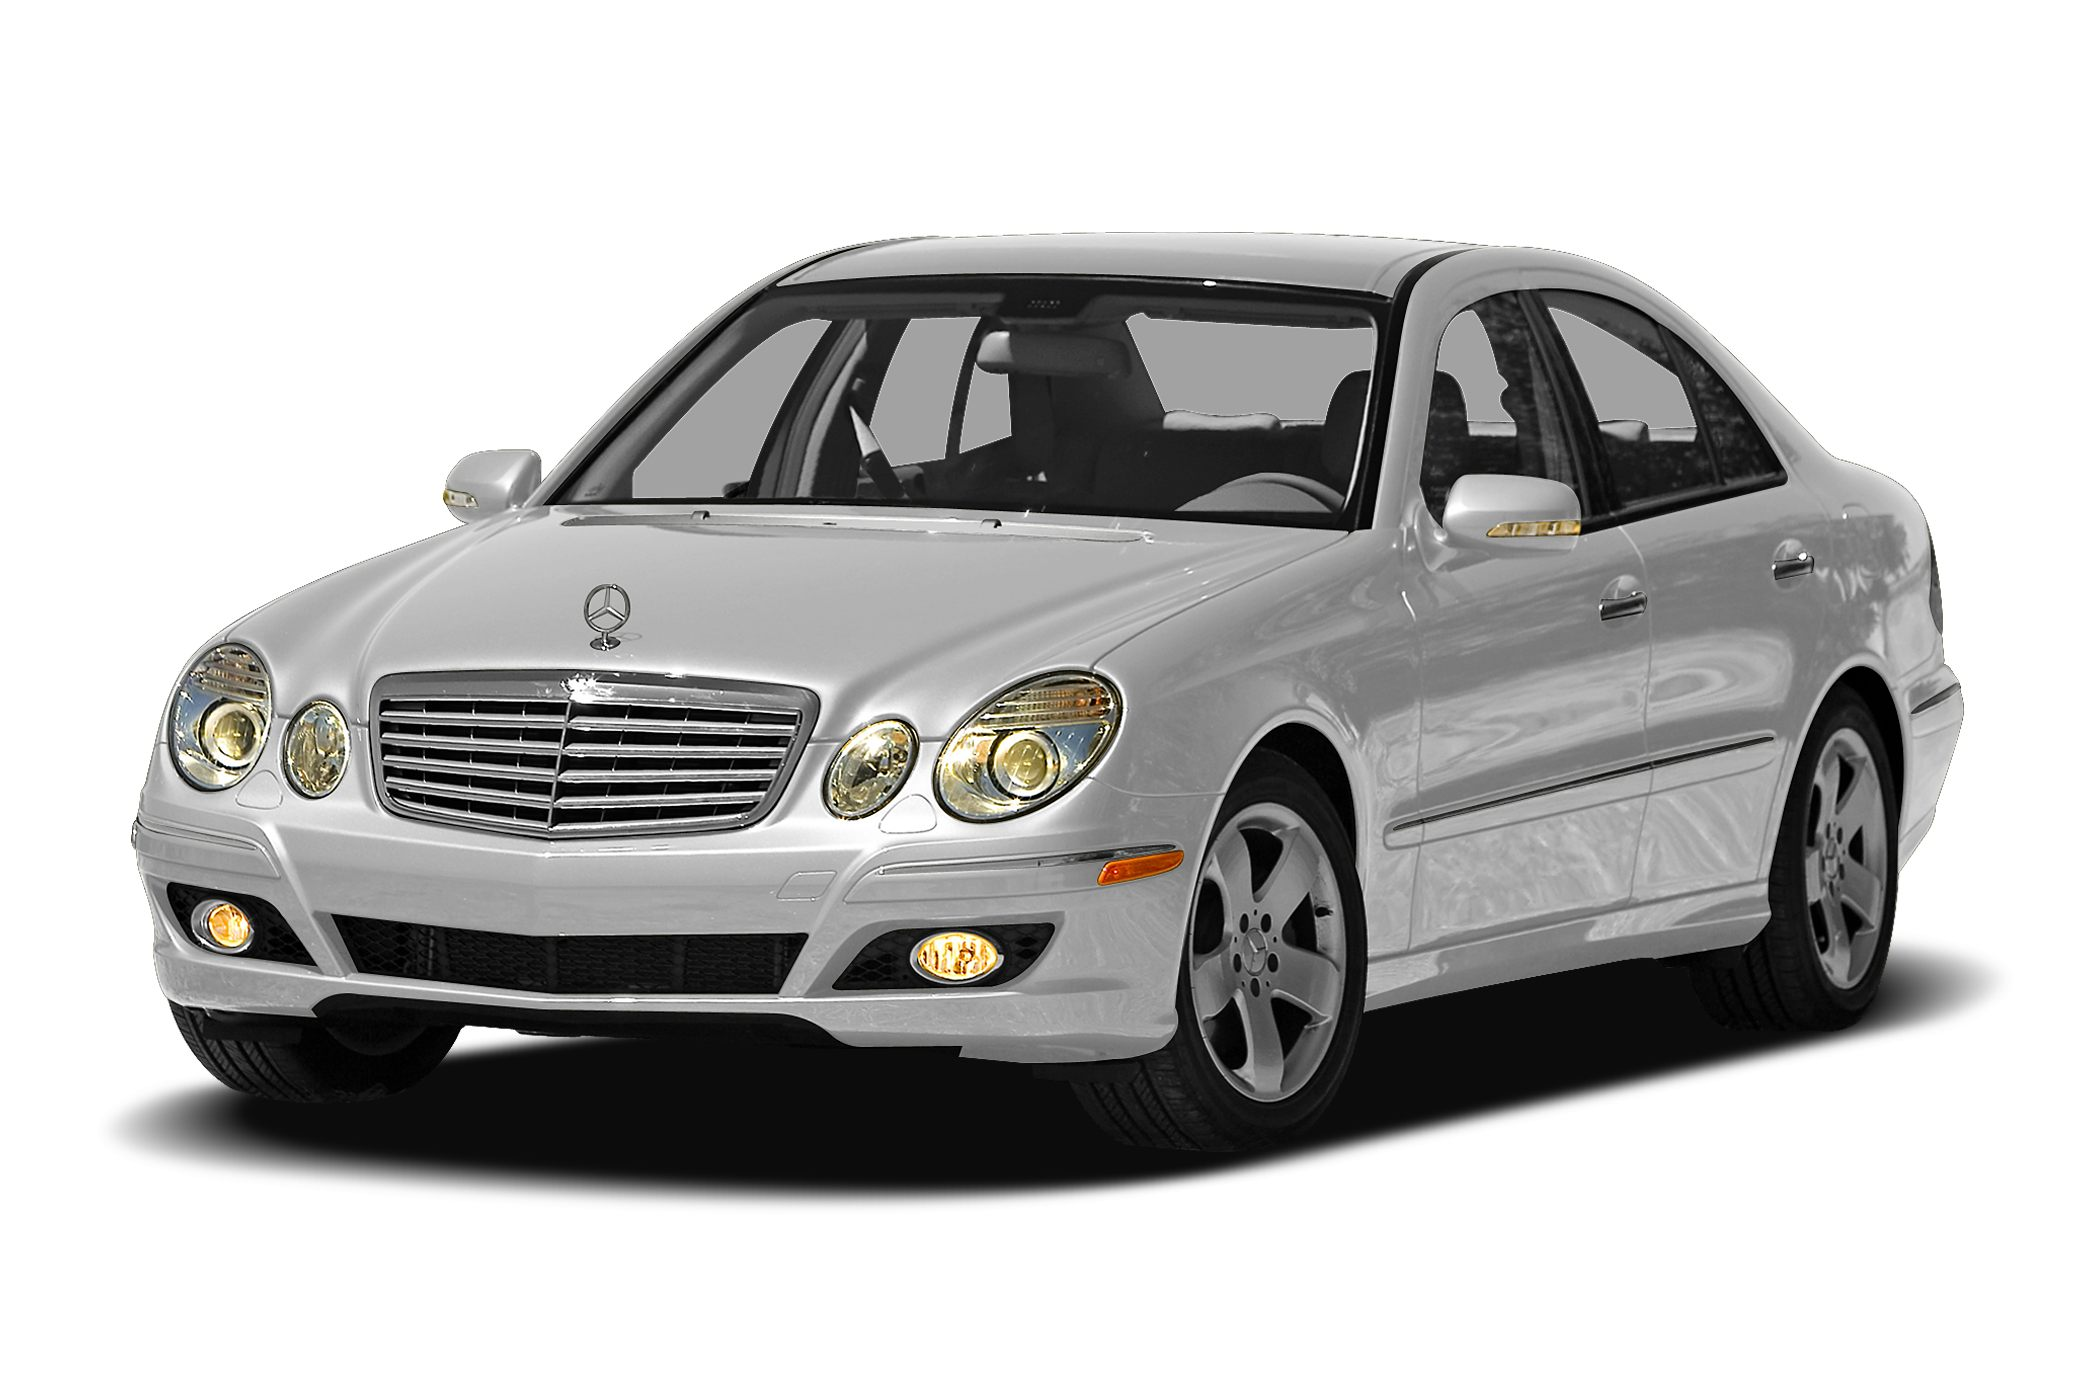 2007 Mercedes-Benz E-Class E550 4MATIC Sedan for sale in Charlotte for $12,995 with 118,724 miles.